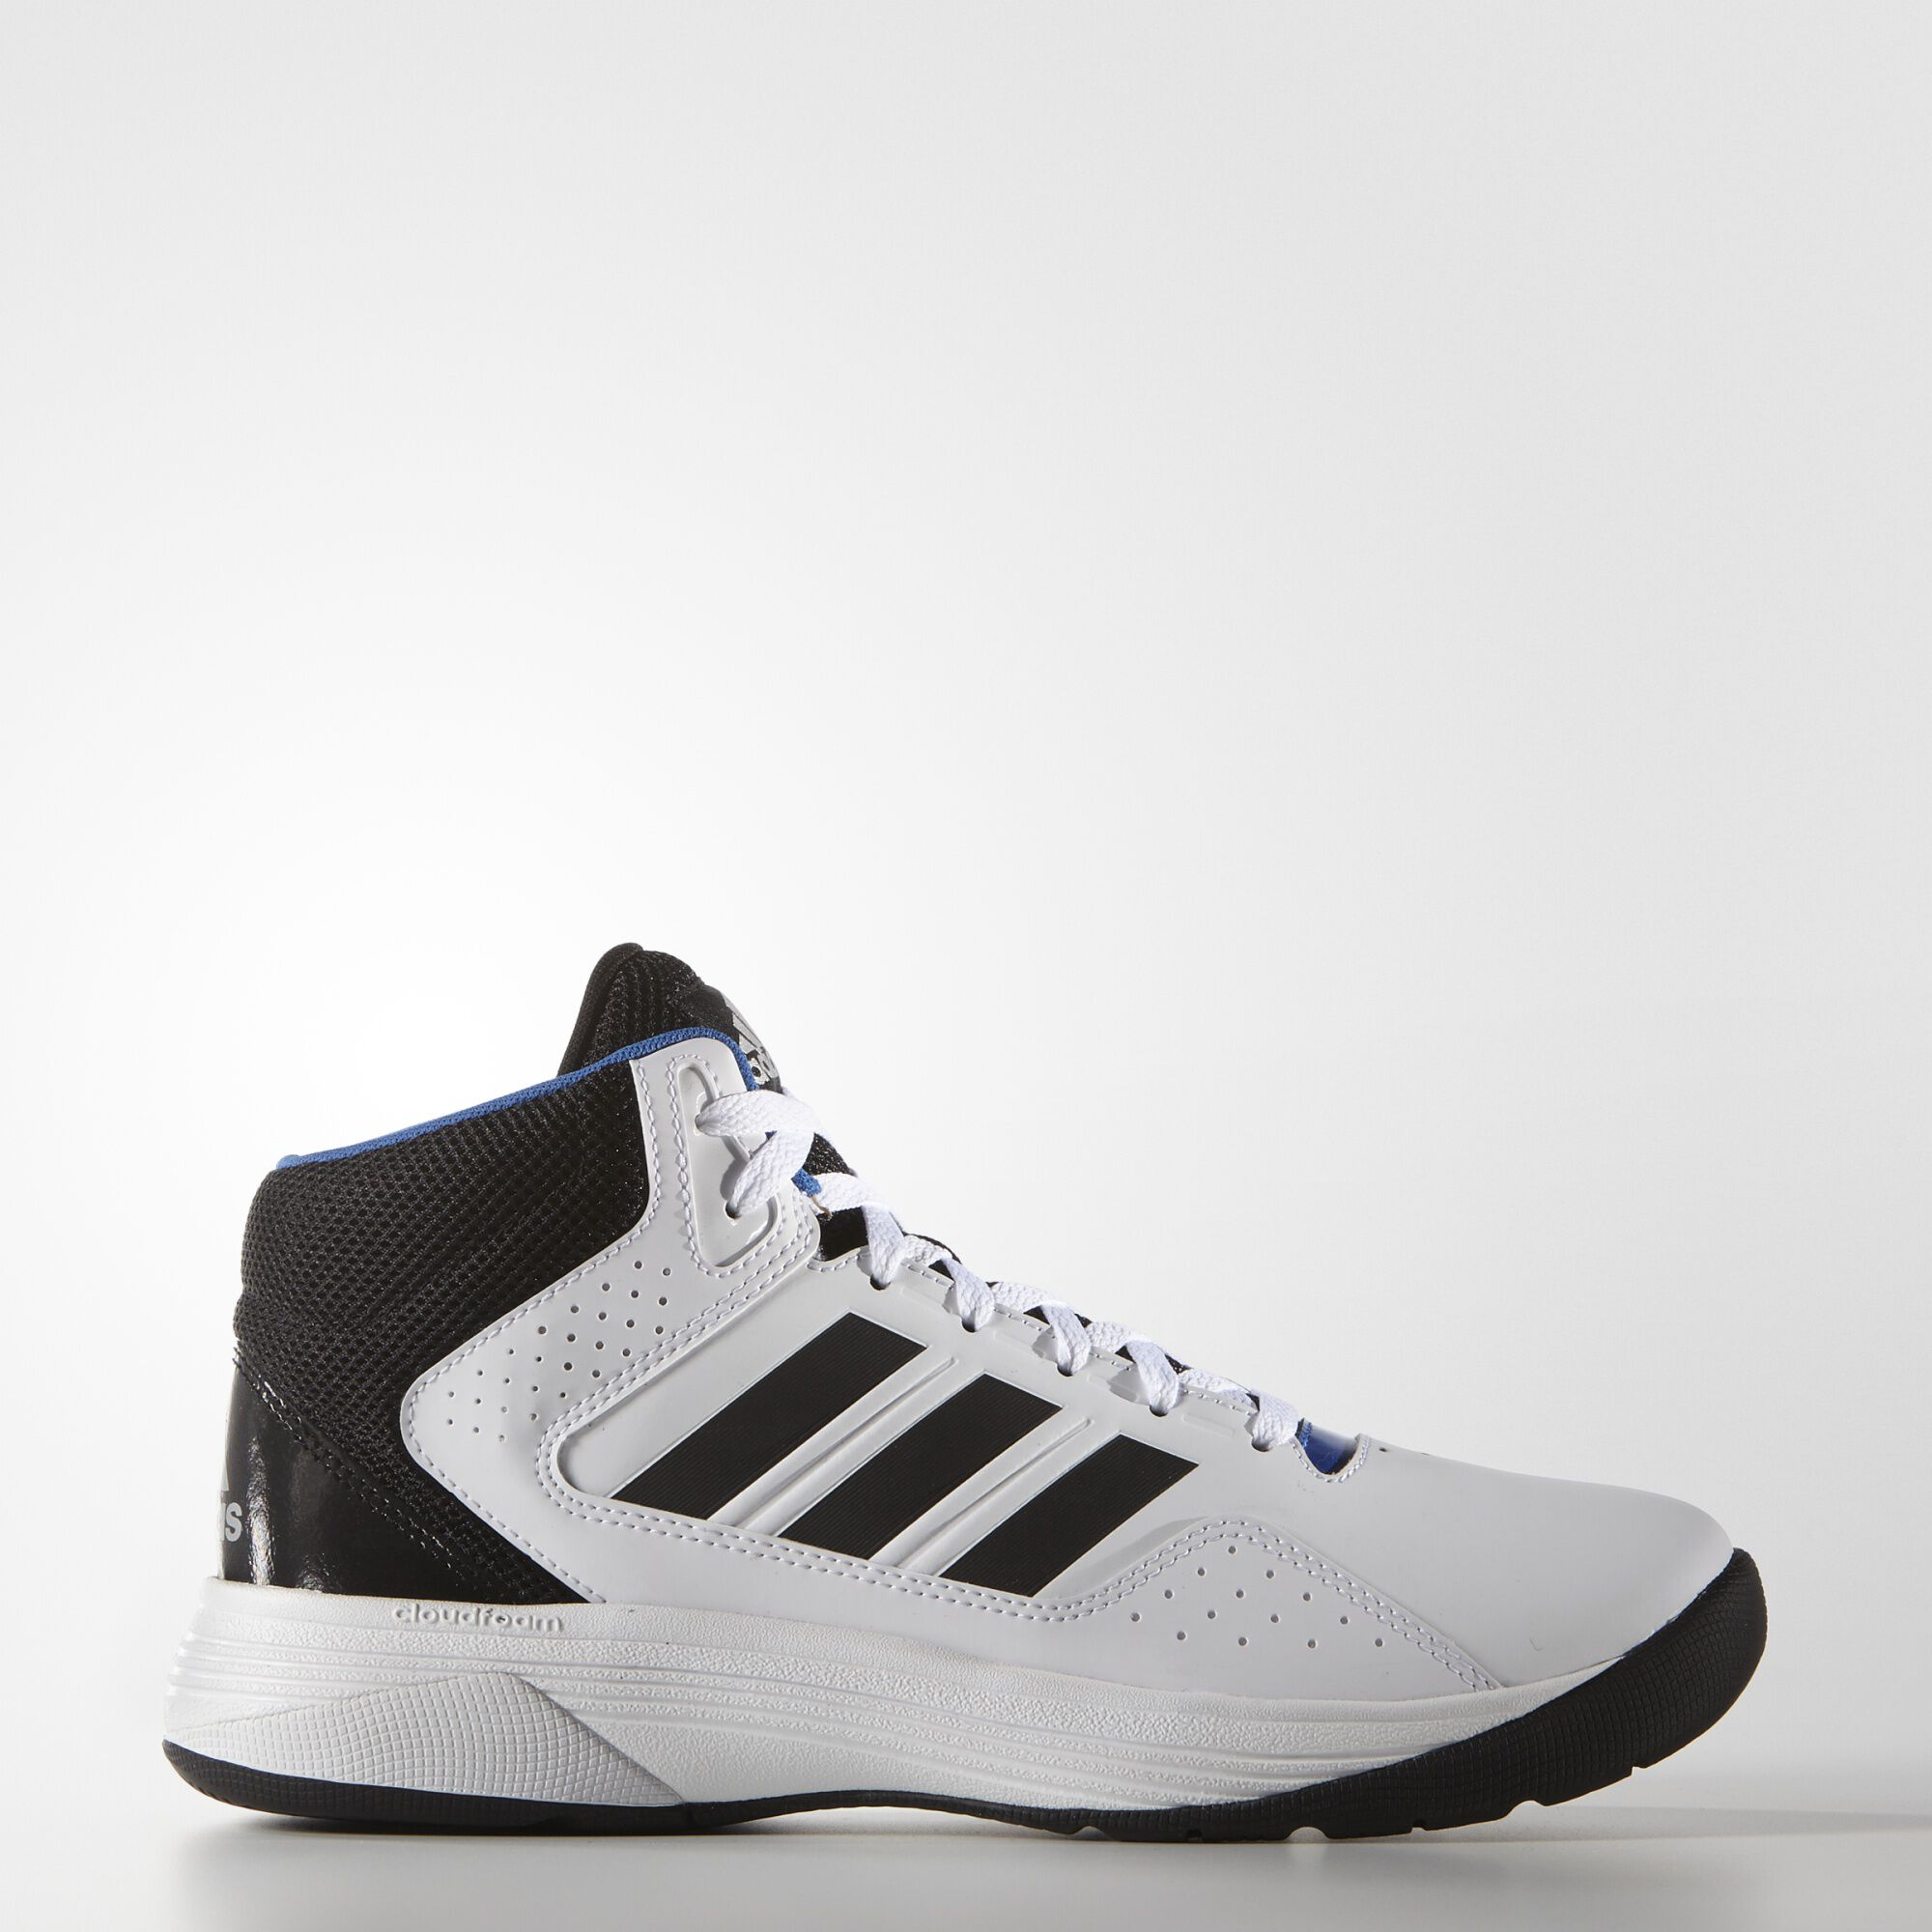 ADD TO CART; adidas - Cloudfoam Ilation Mid Shoes Running White Ftw / Black  / Matte Silver AQ1361